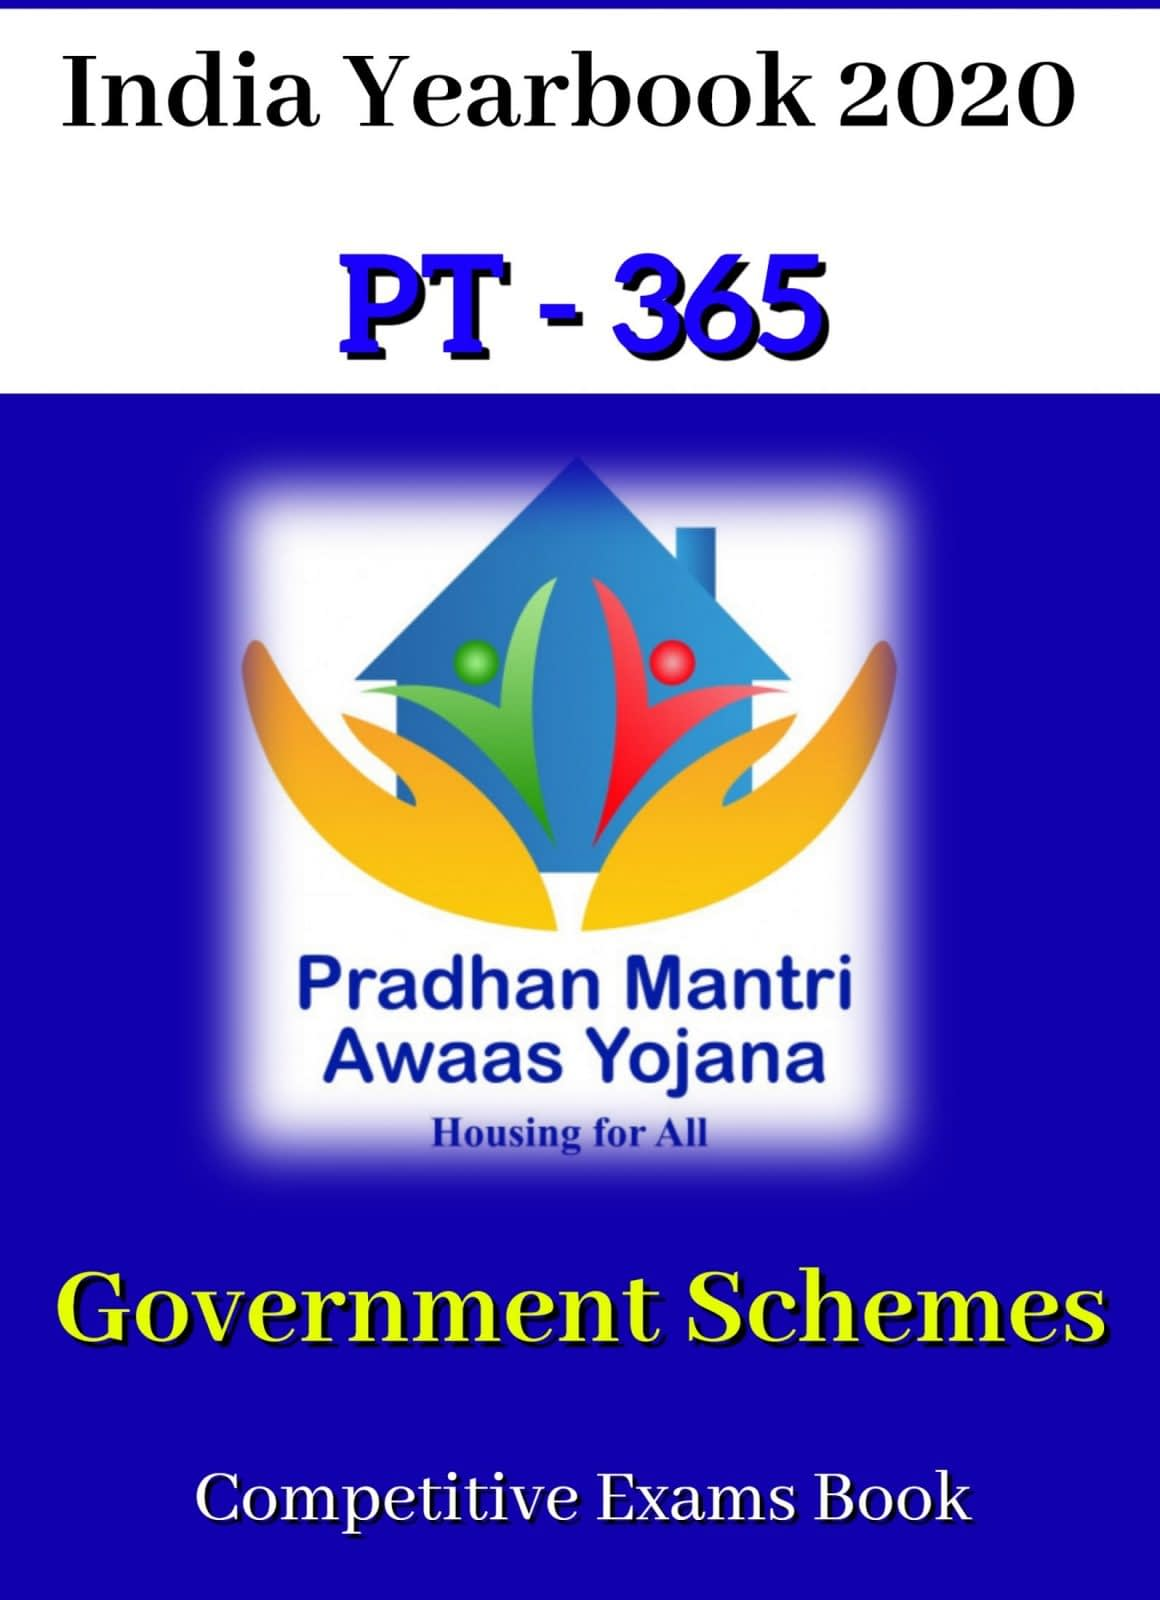 PT 365 Govt Schemes for UPSC and all other exam 2020